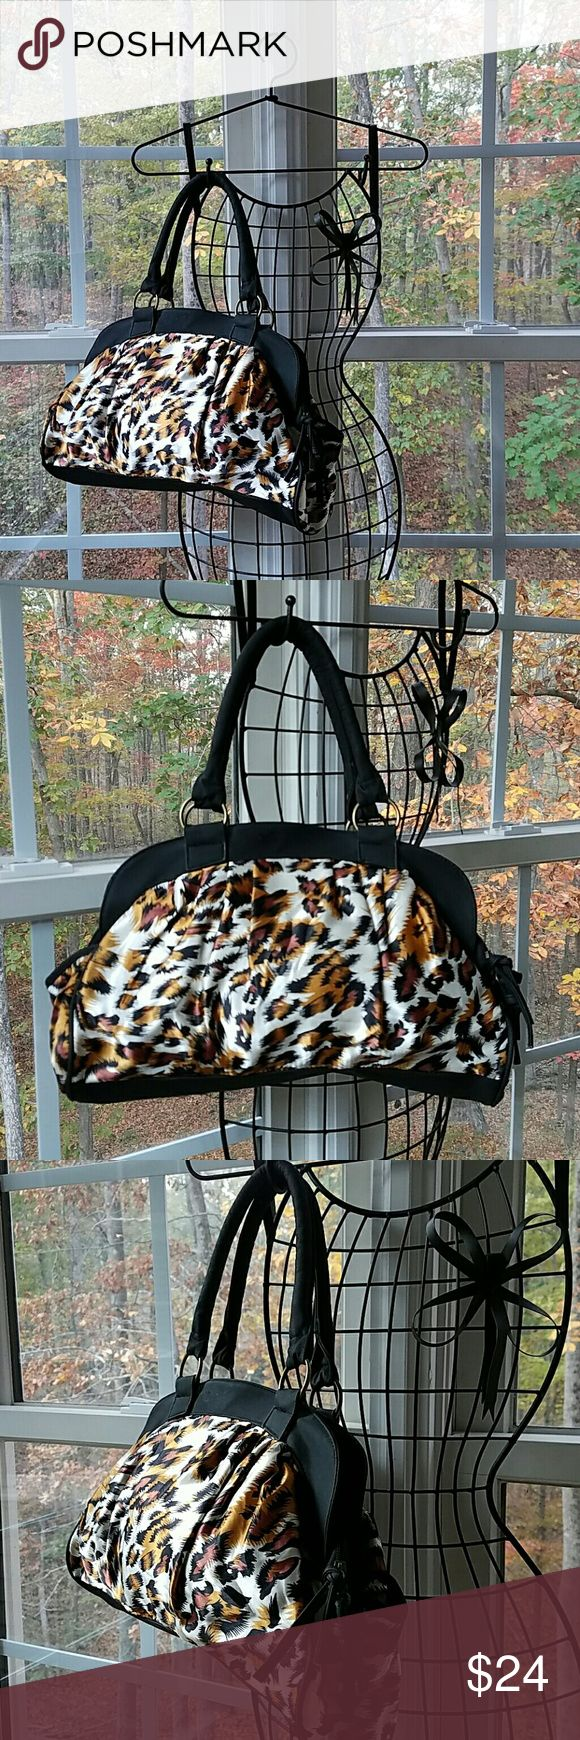 "🆕Fierce Animal Print Boutique Shoulder Bag Check out this fierce animal print shoulder bag! Two side pockets interior zippered pocket and 2 slip pockets. Spacious with bright orange colored interior. Width 16"", Height 8-1/2"", Depth 5"", Strap 8"". Please let me know if you have any questions. Thank you for looking! Xoxoxoxo Victoria Leland Designs Bags Shoulder Bags"